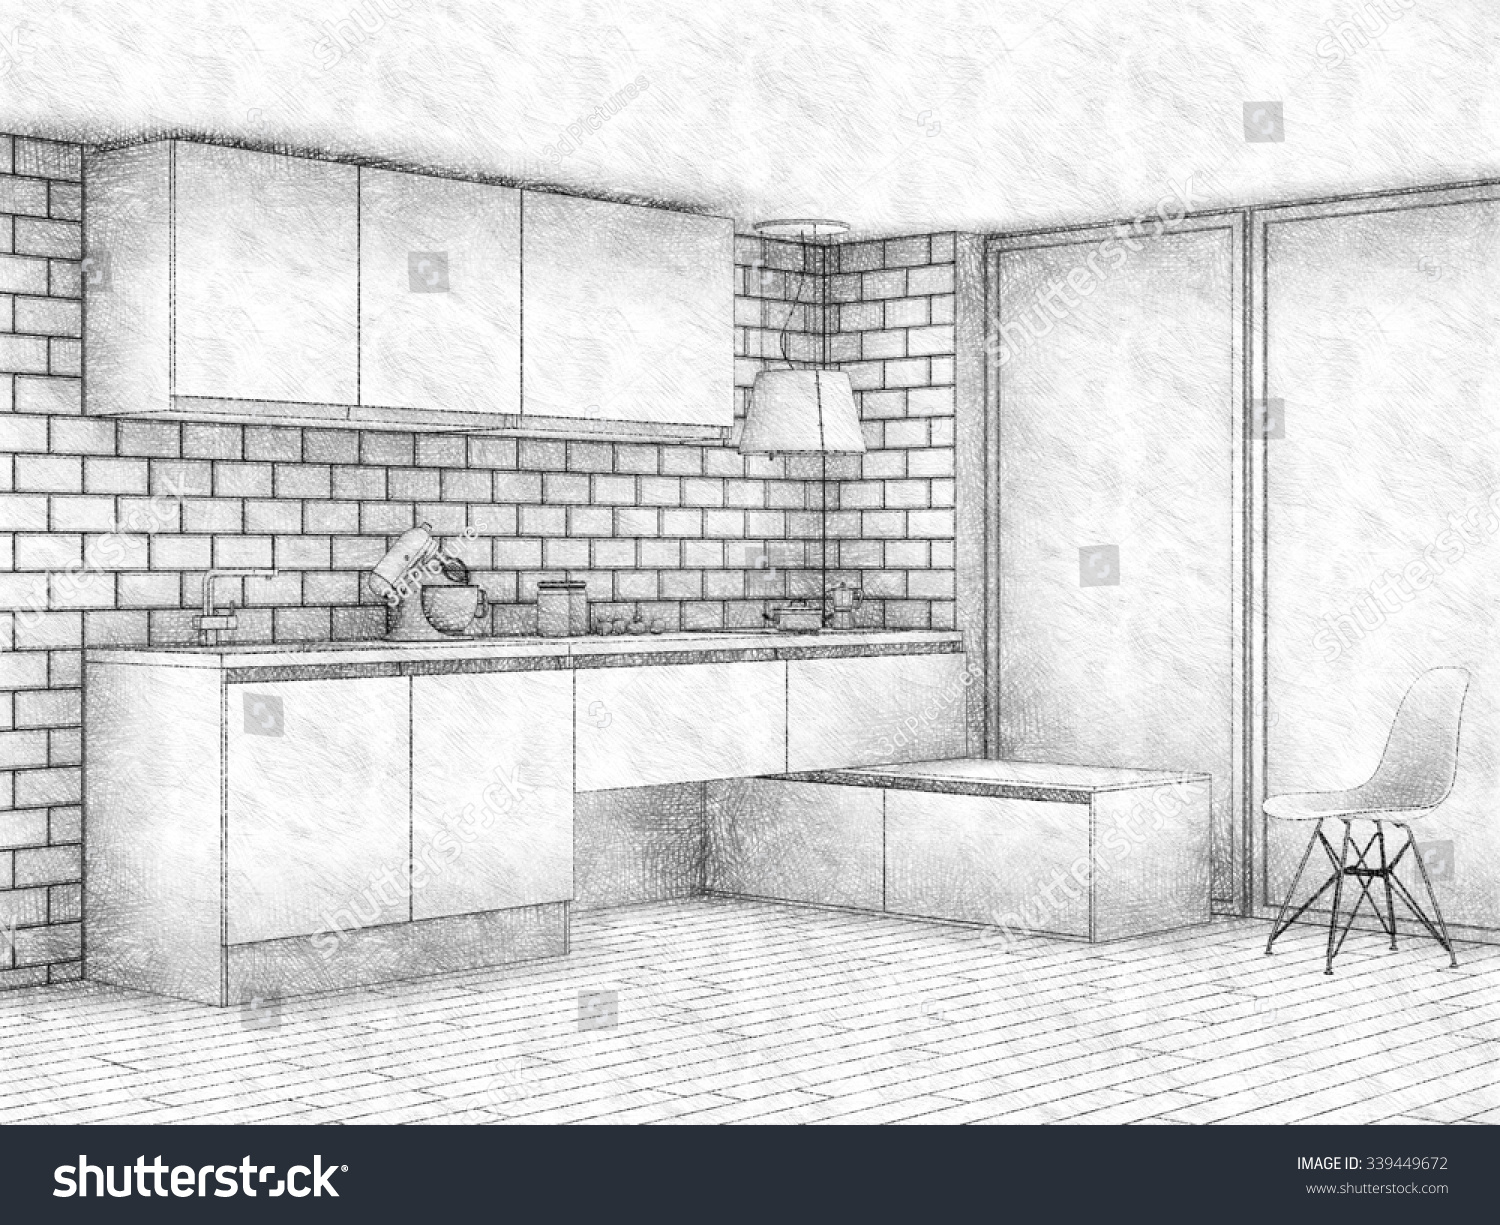 window pencil drawing. pencil sketch of modern kitchen interior with big window. 3d render window drawing